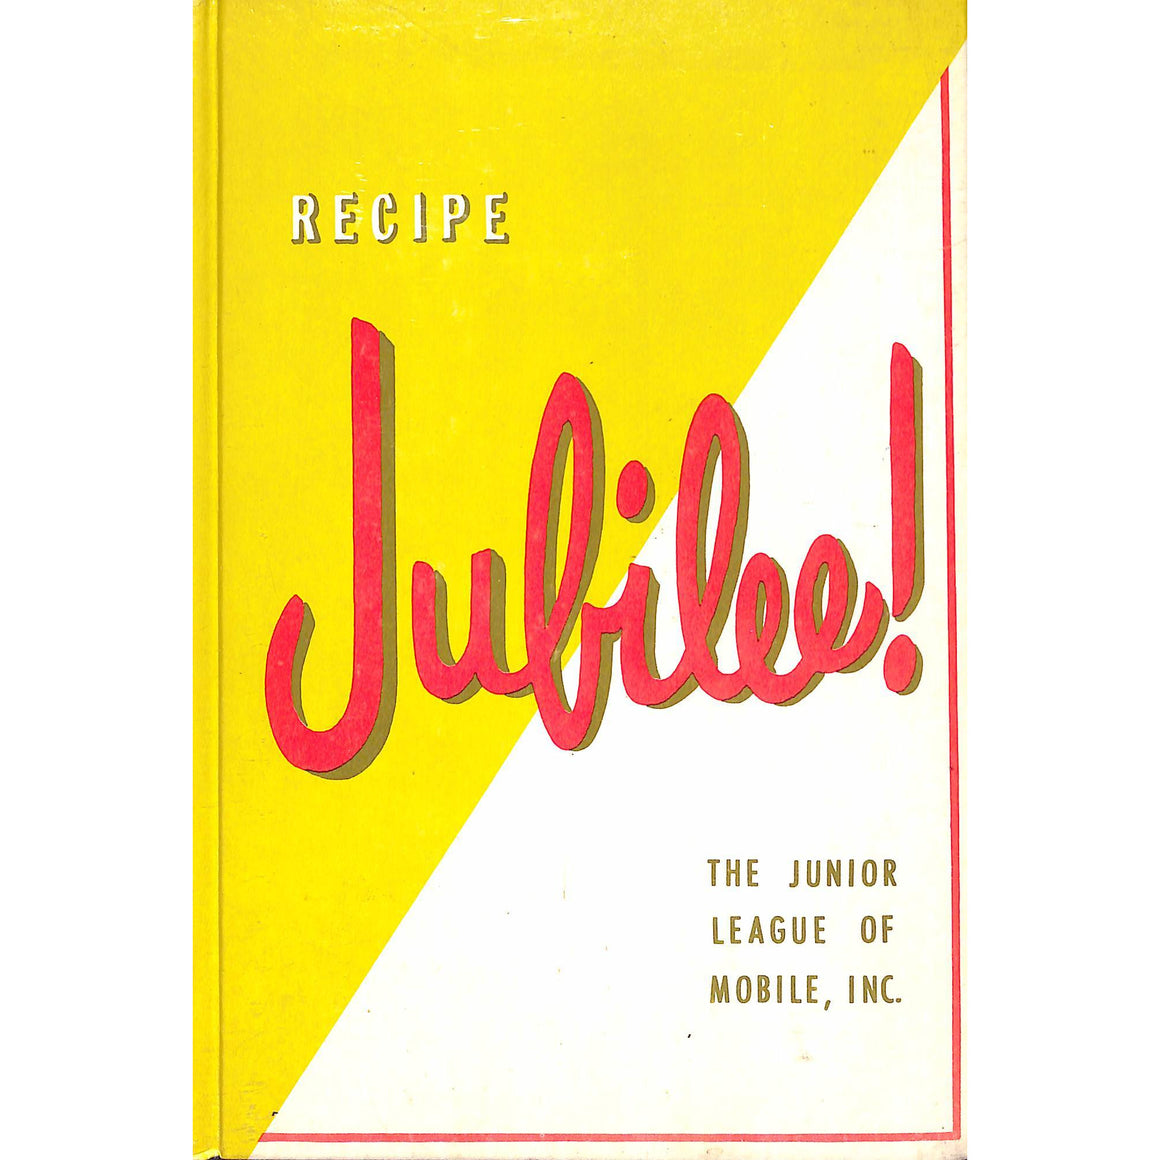 'Recipe Jubilee!: The Junior League of Mobile, Inc' 1964